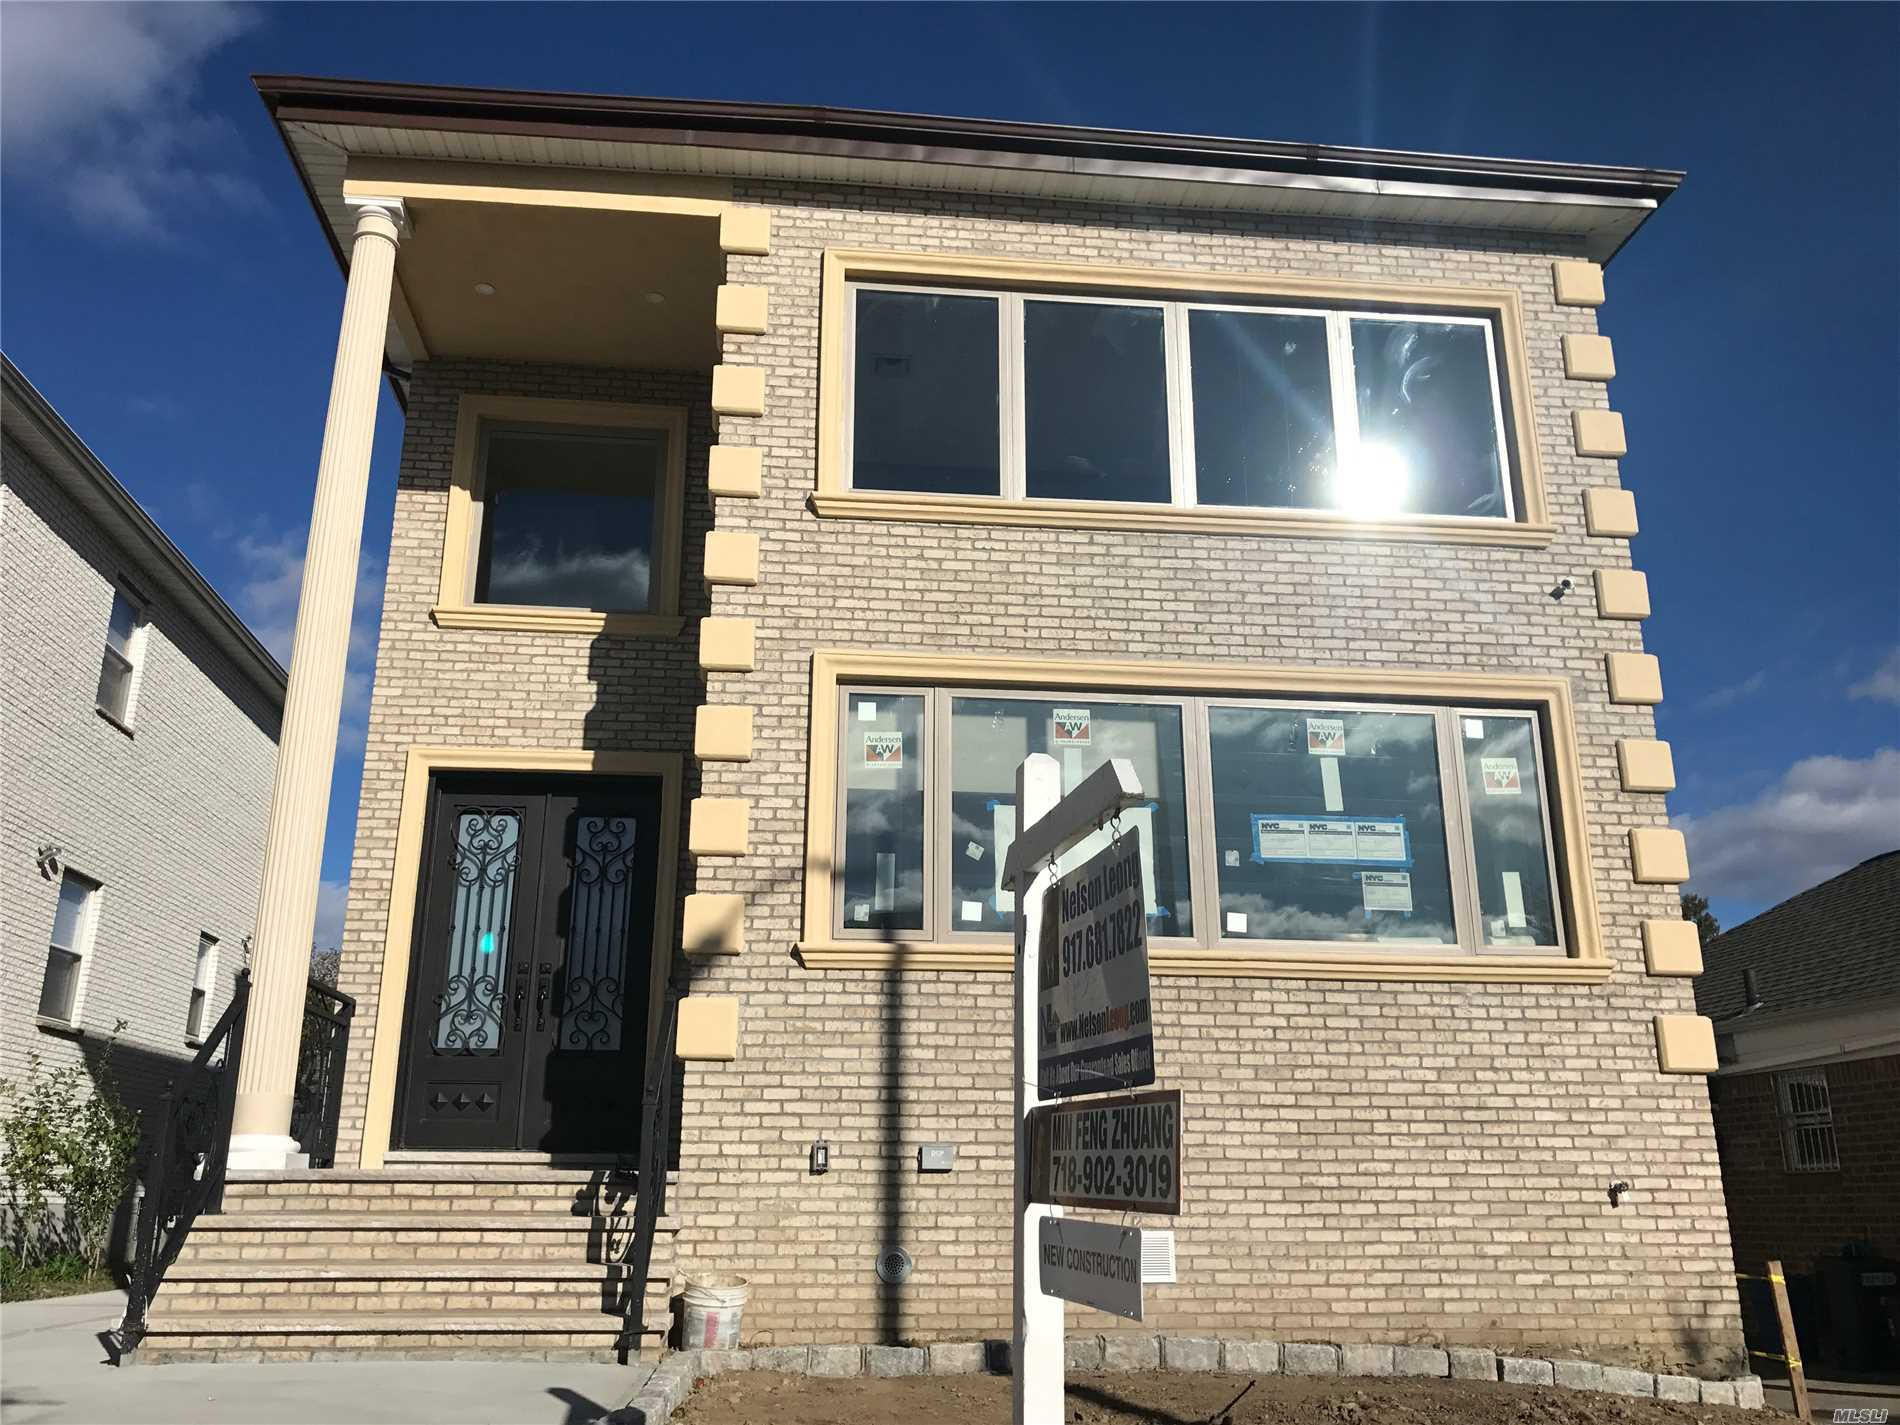 New Construction On A Quiet Street. This House Is Designed And Constructed By Pure Nyc. It Features Top Of The Line Appliances, Italian White Cararra Marble, Duravit Toilets. The House Was Built And Reinforced With Steel I-Beams To Create A One Of A Kind Open Concept For The Basement And First Floor. This Is The First Of Its Kind In Fresh Meadows And Surrounding Areas. Close To The Park And Convenient To All Transportation And Roadways.